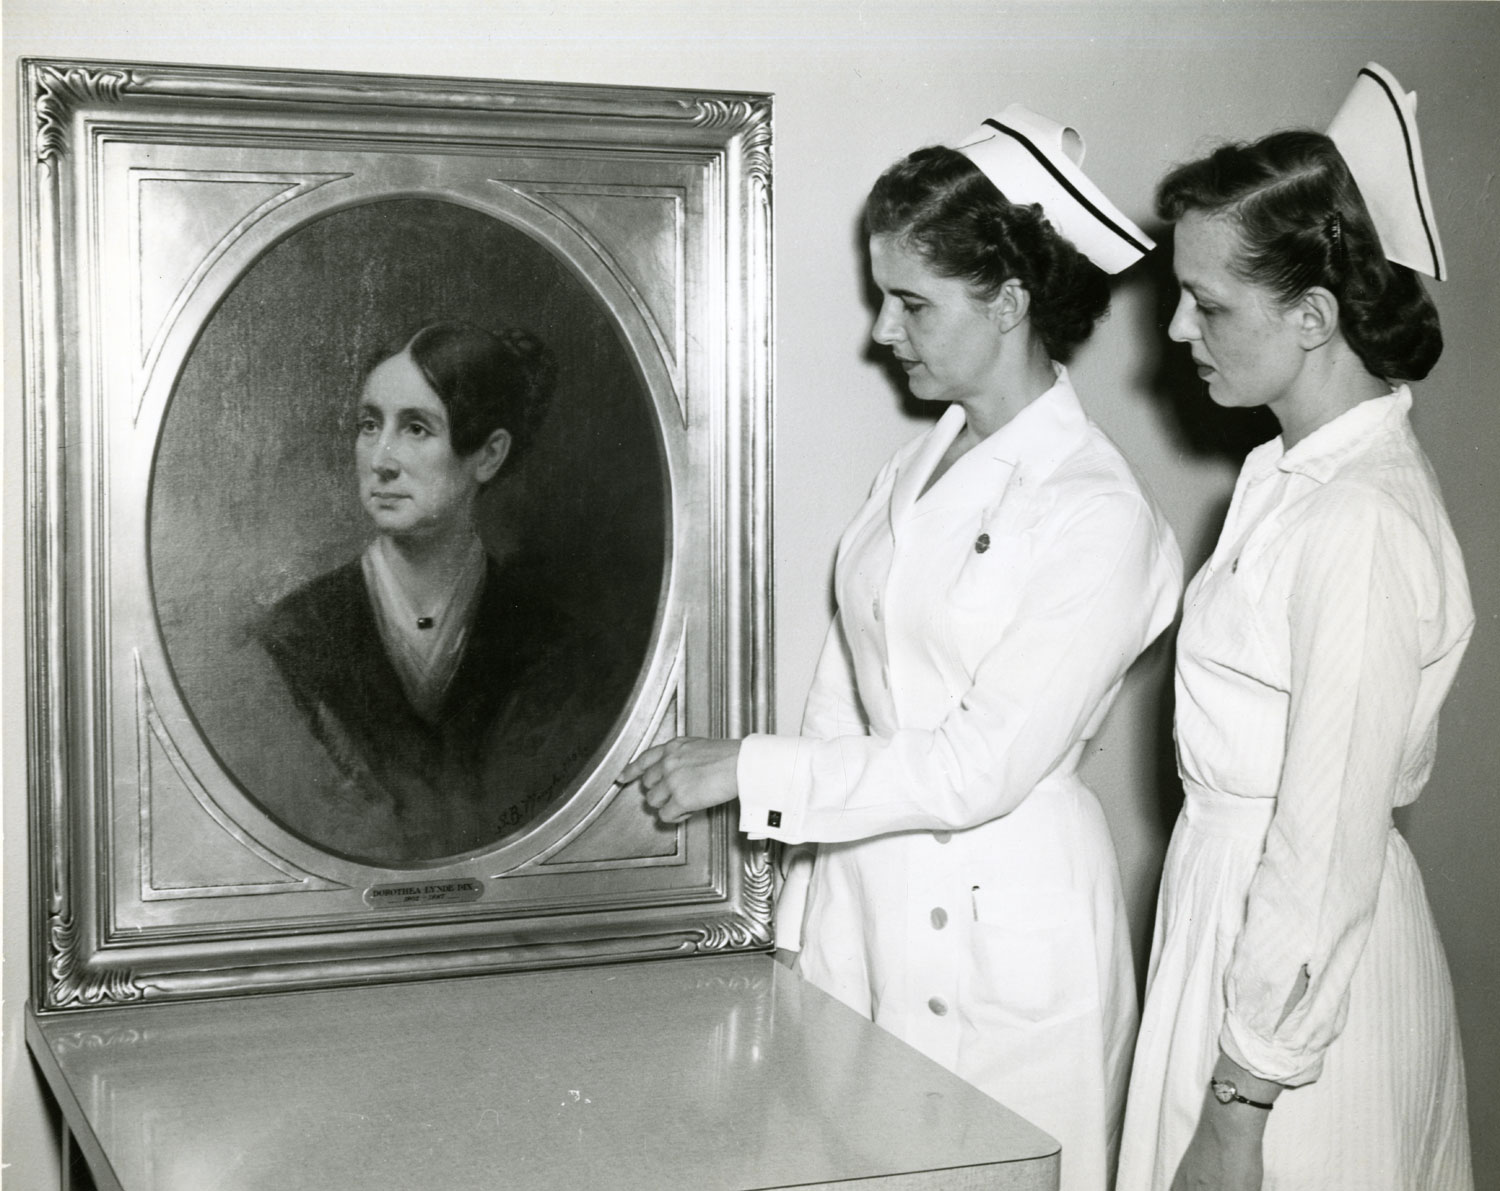 Dorothea Lynde Dix was an educator and activist who spoke out against the problems in the mental health care system. Her legacy as a founder of St. Elizabeths endured into the second century of the hospital. Courtesy National Library of Medicine, c. 1950s.